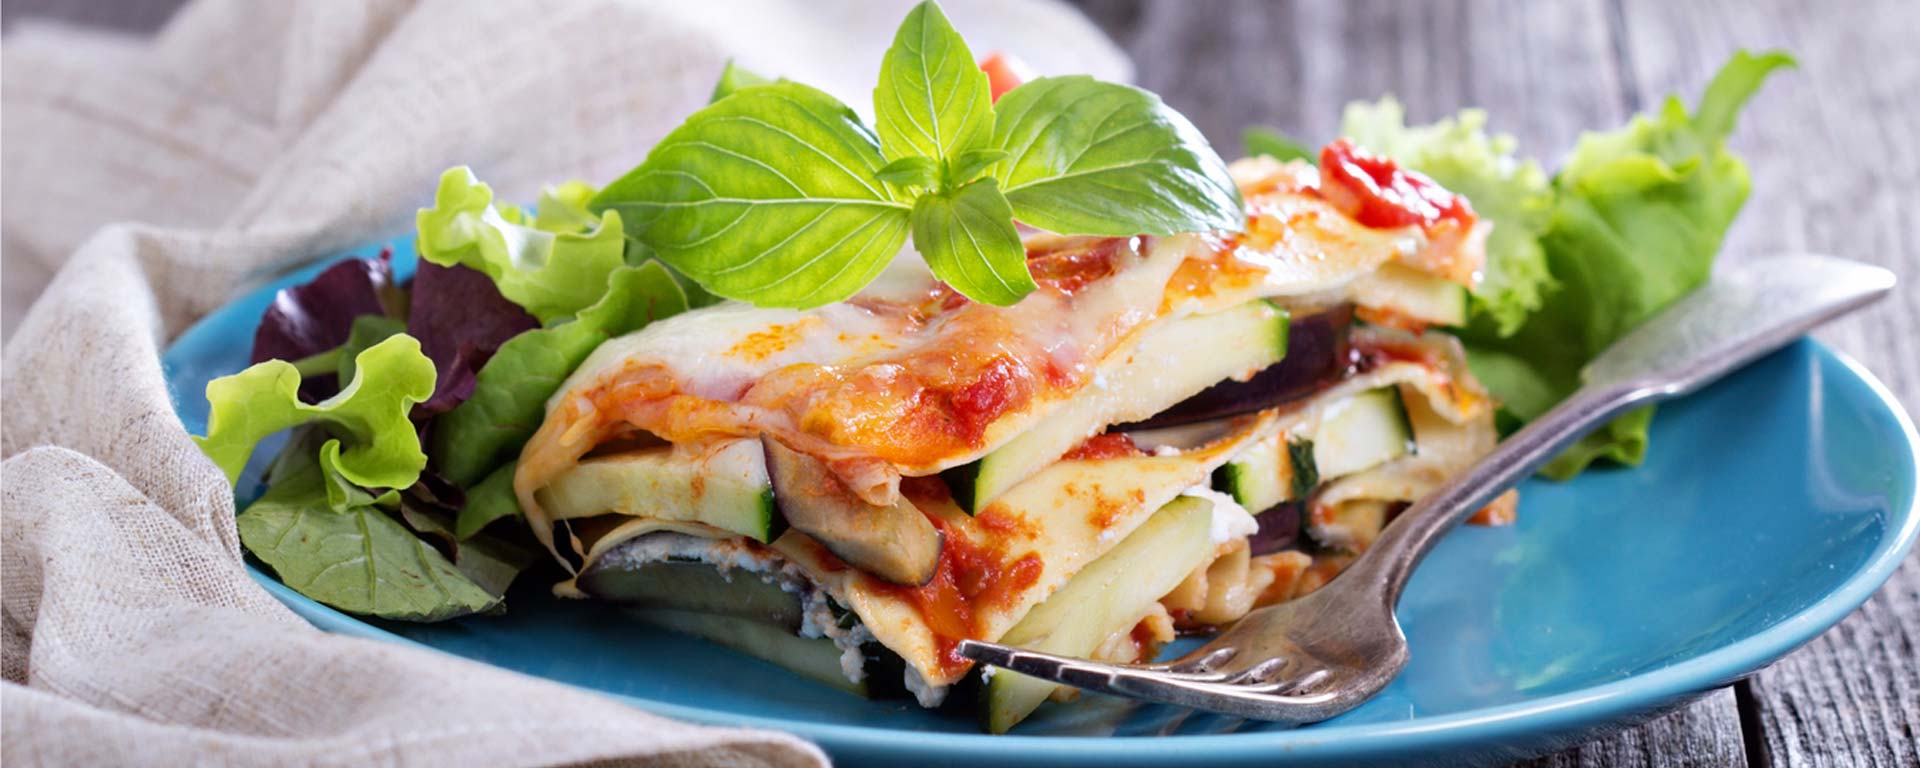 Photo for - Vegetable Lasagna Swirls